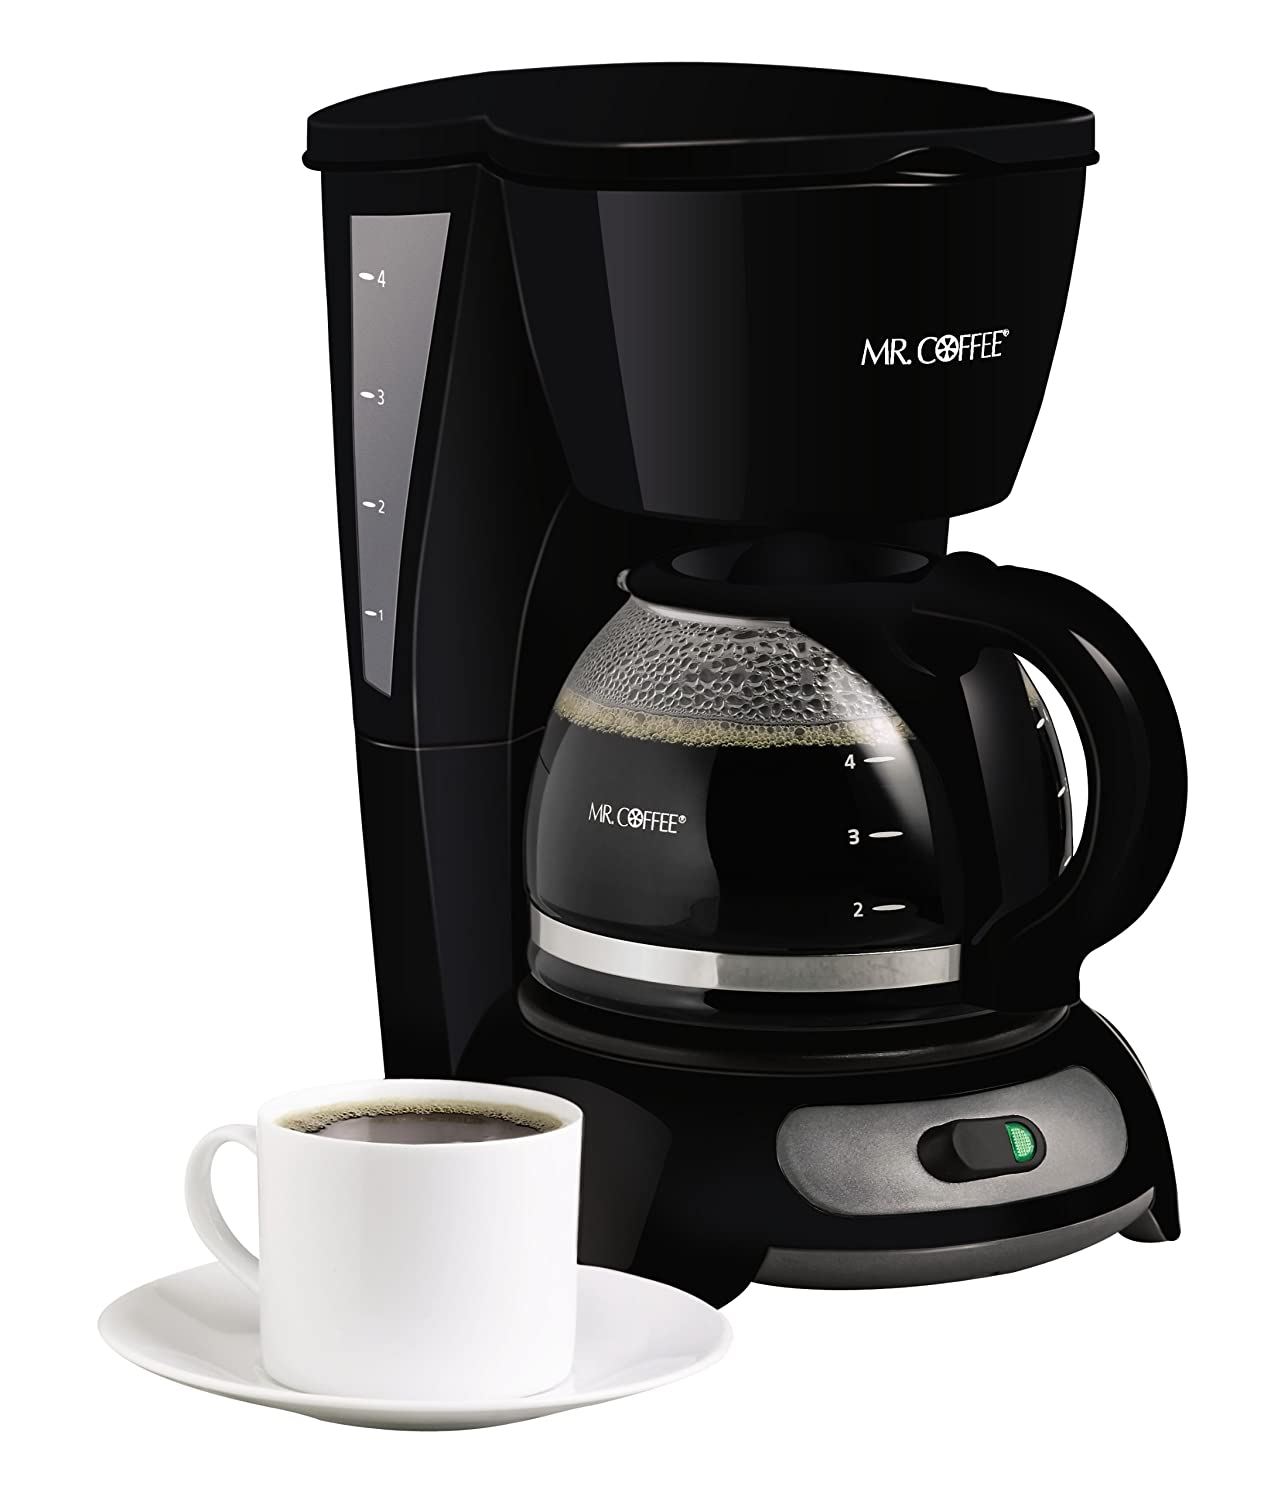 Mr Coffee Maker TF5-NP: For 4 Cups of Everyday Happiness